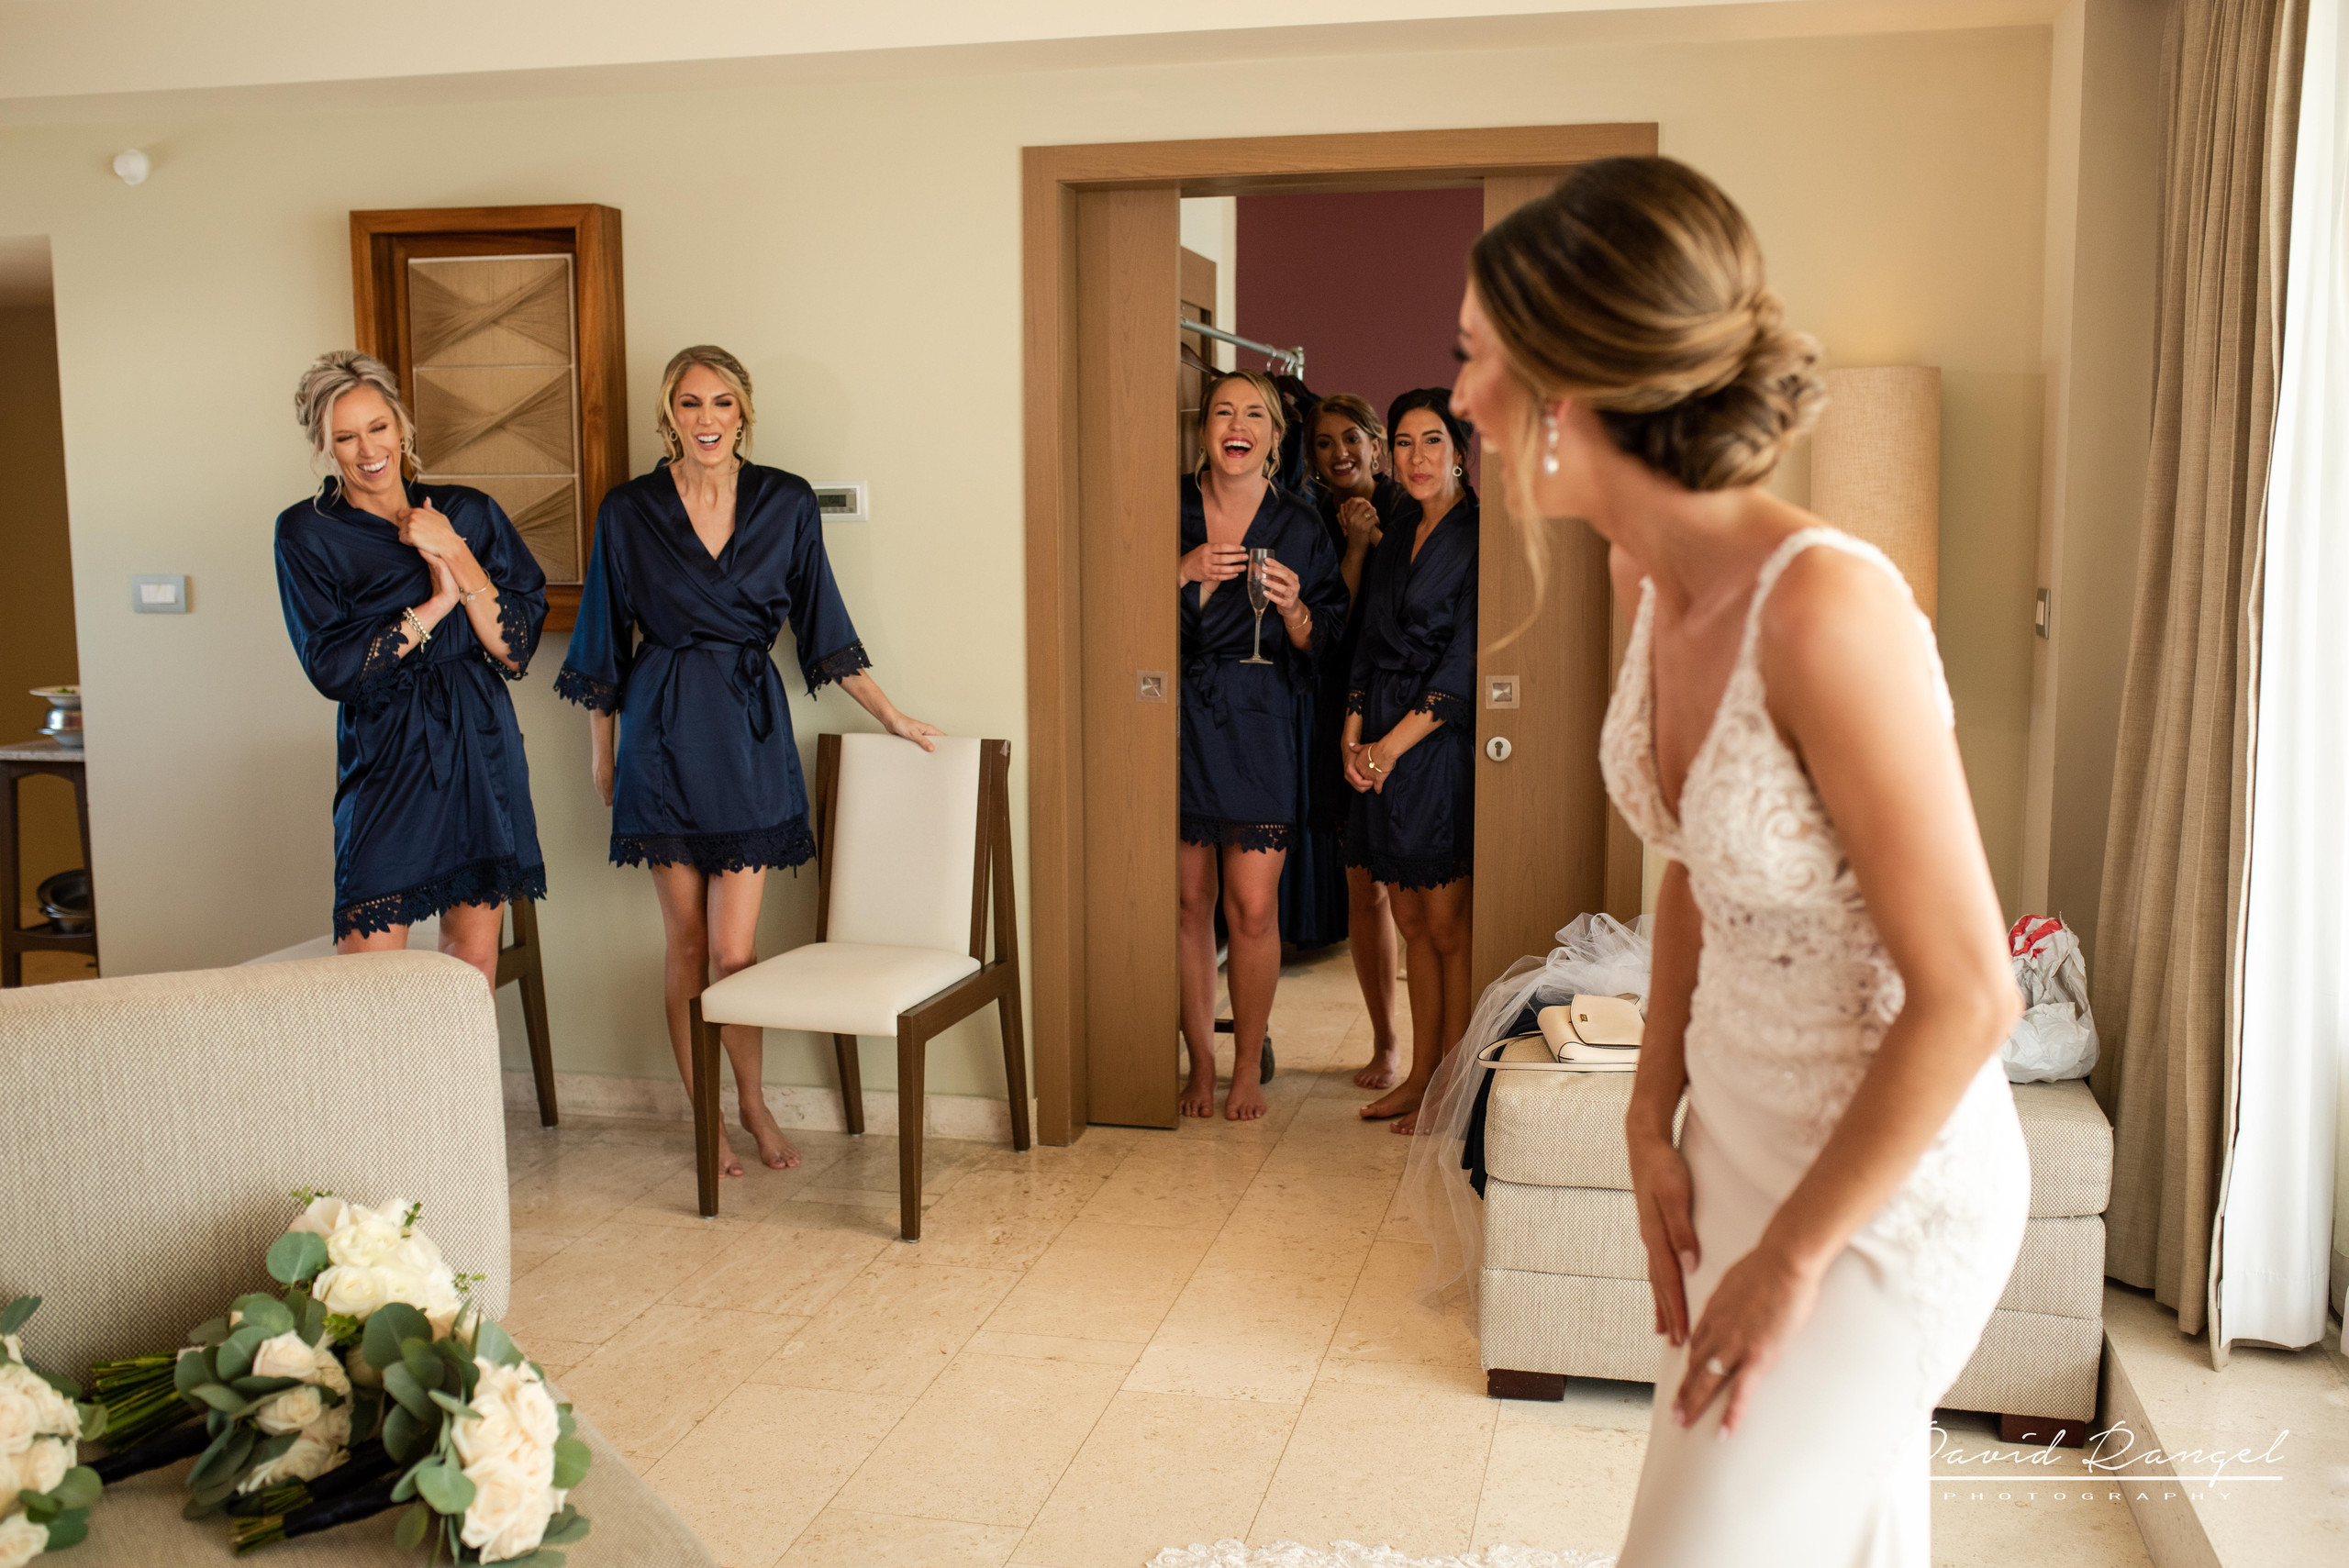 bride+getting+ready+dress+exited+bridesmaids